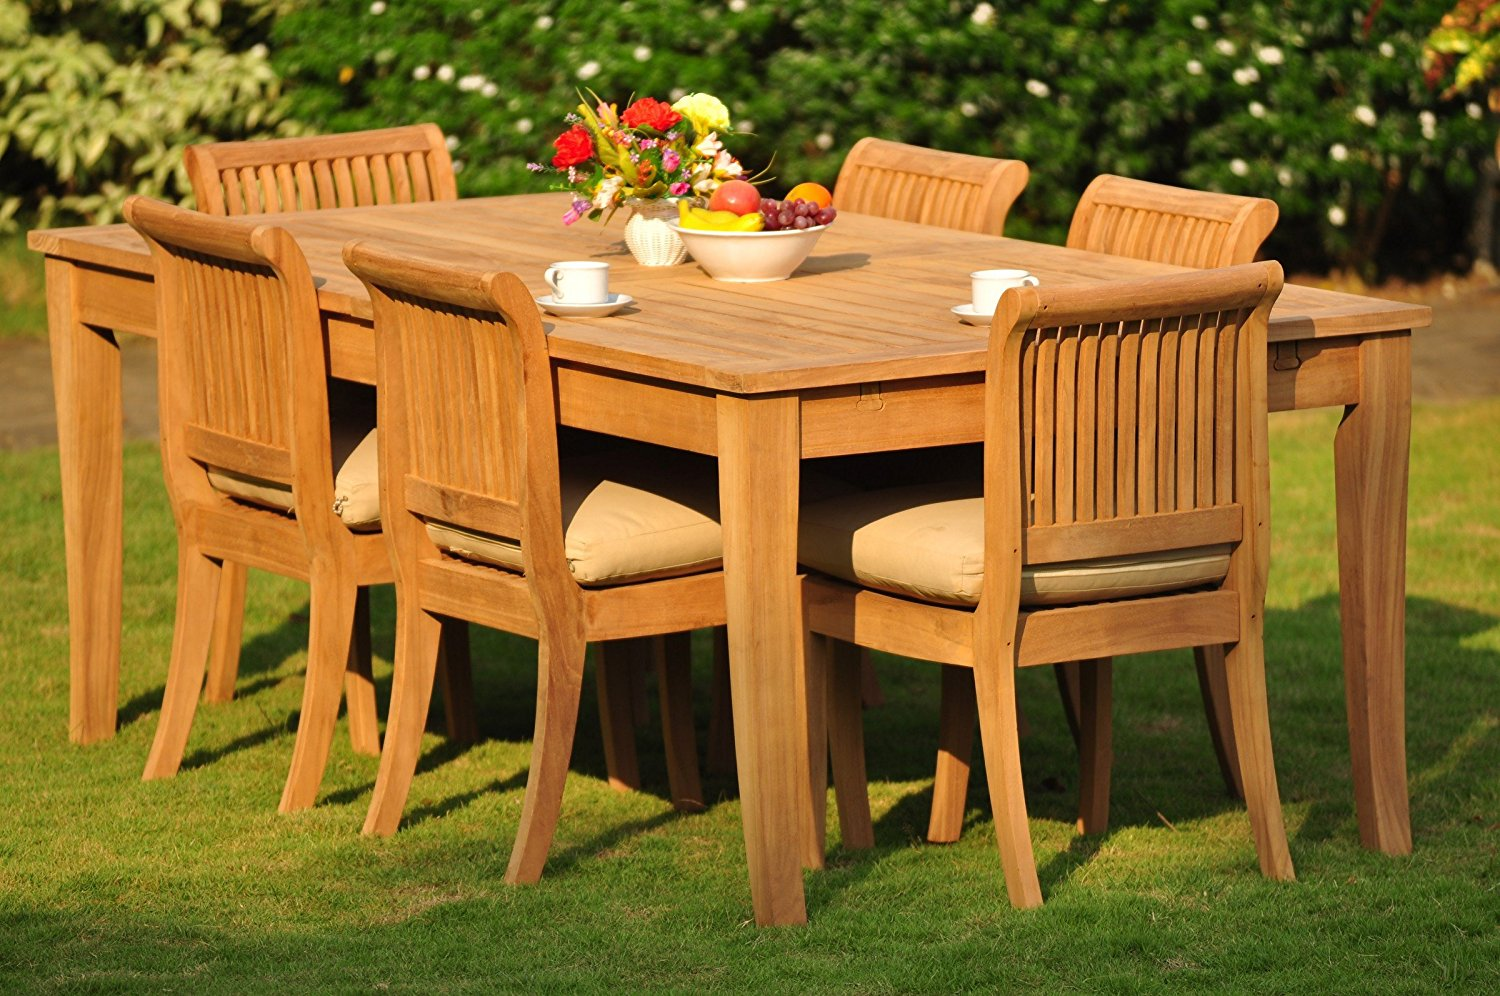 Buy Grade A Teak Wood Dining Set 6 Seater 7 Pc Large Atnas 122 Dining Rectangle Table Table And 6 Giva Armless Chairs Wfdsgv50 In Cheap Price On Alibaba Com